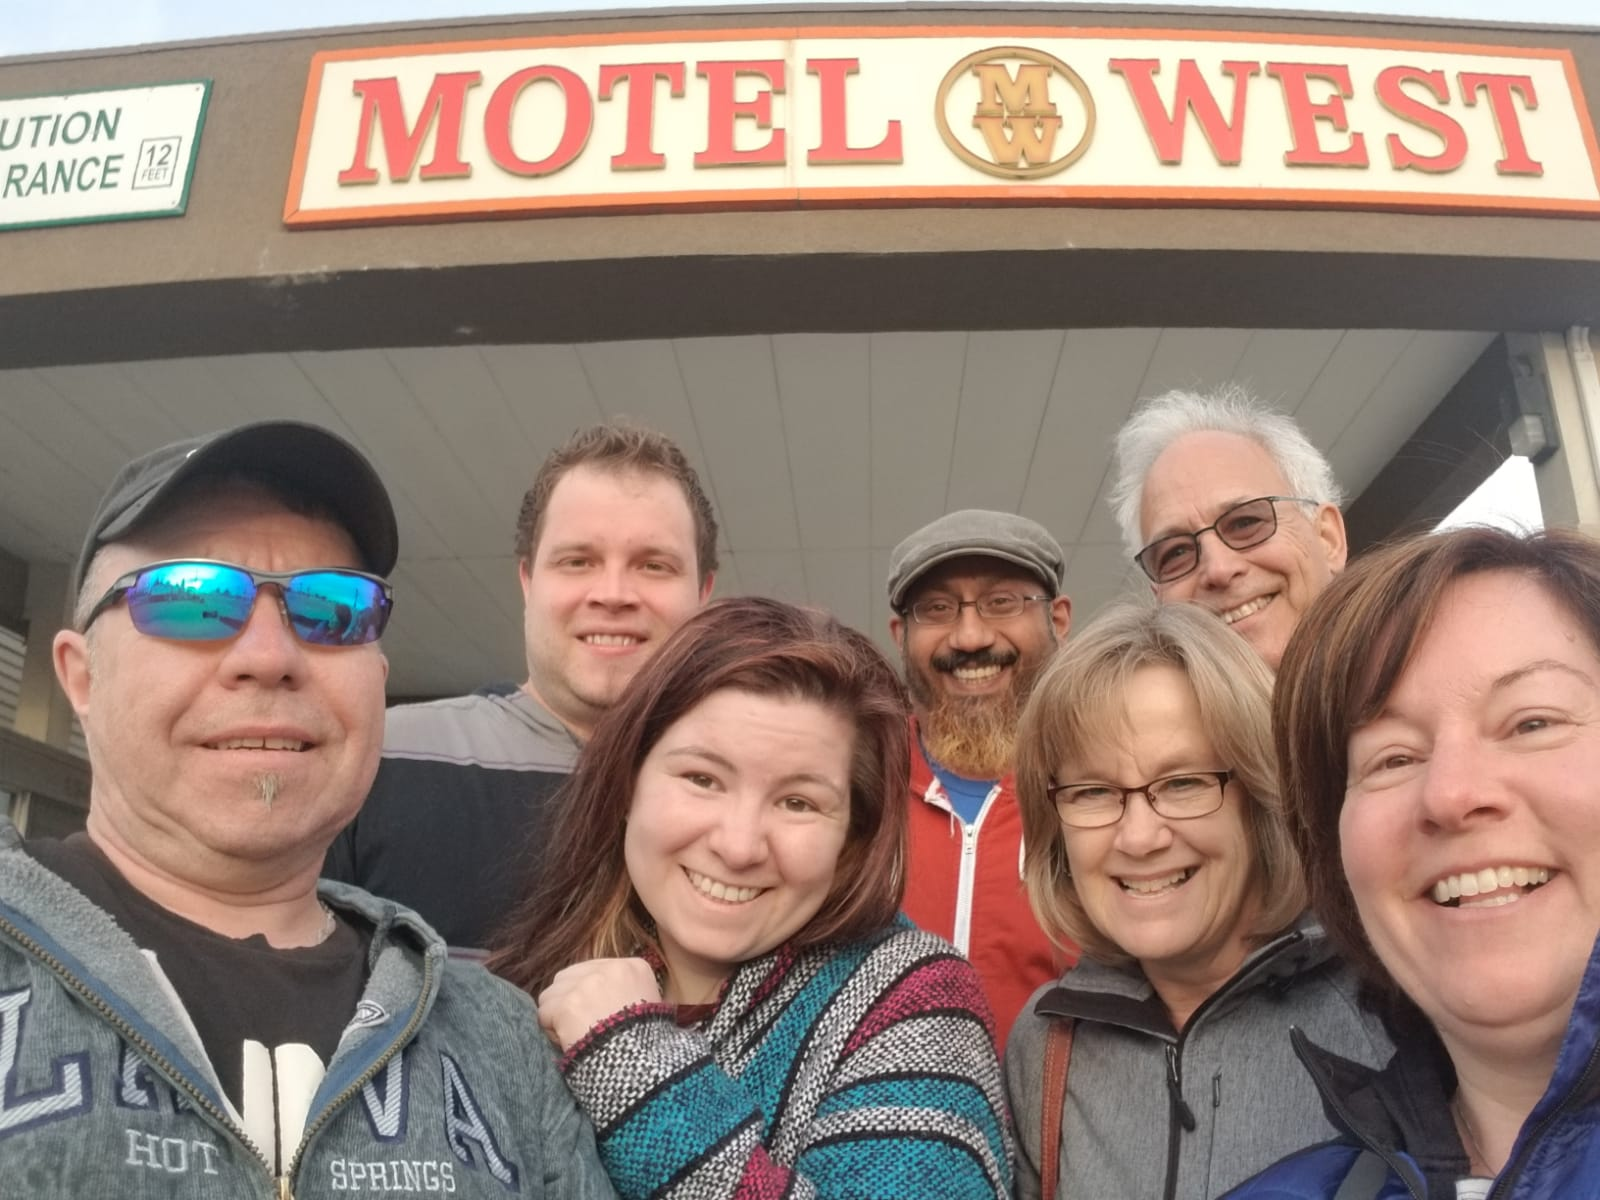 March 21st - Arrived safely in Idaho Falls; a 1050km drive from Langdon!